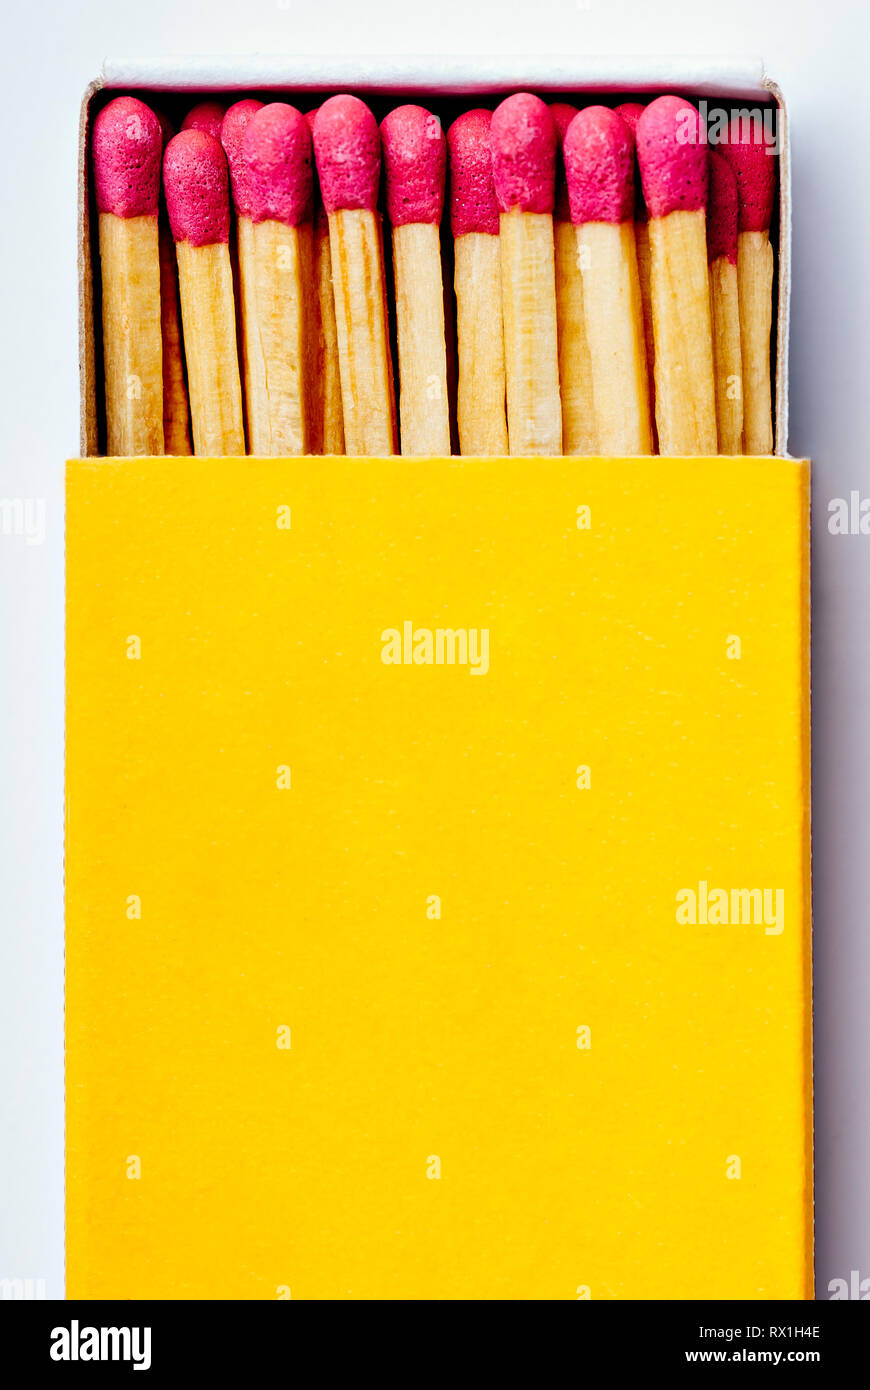 Brand new open yellow matchbox with many pink match sticks in it - Stock Image